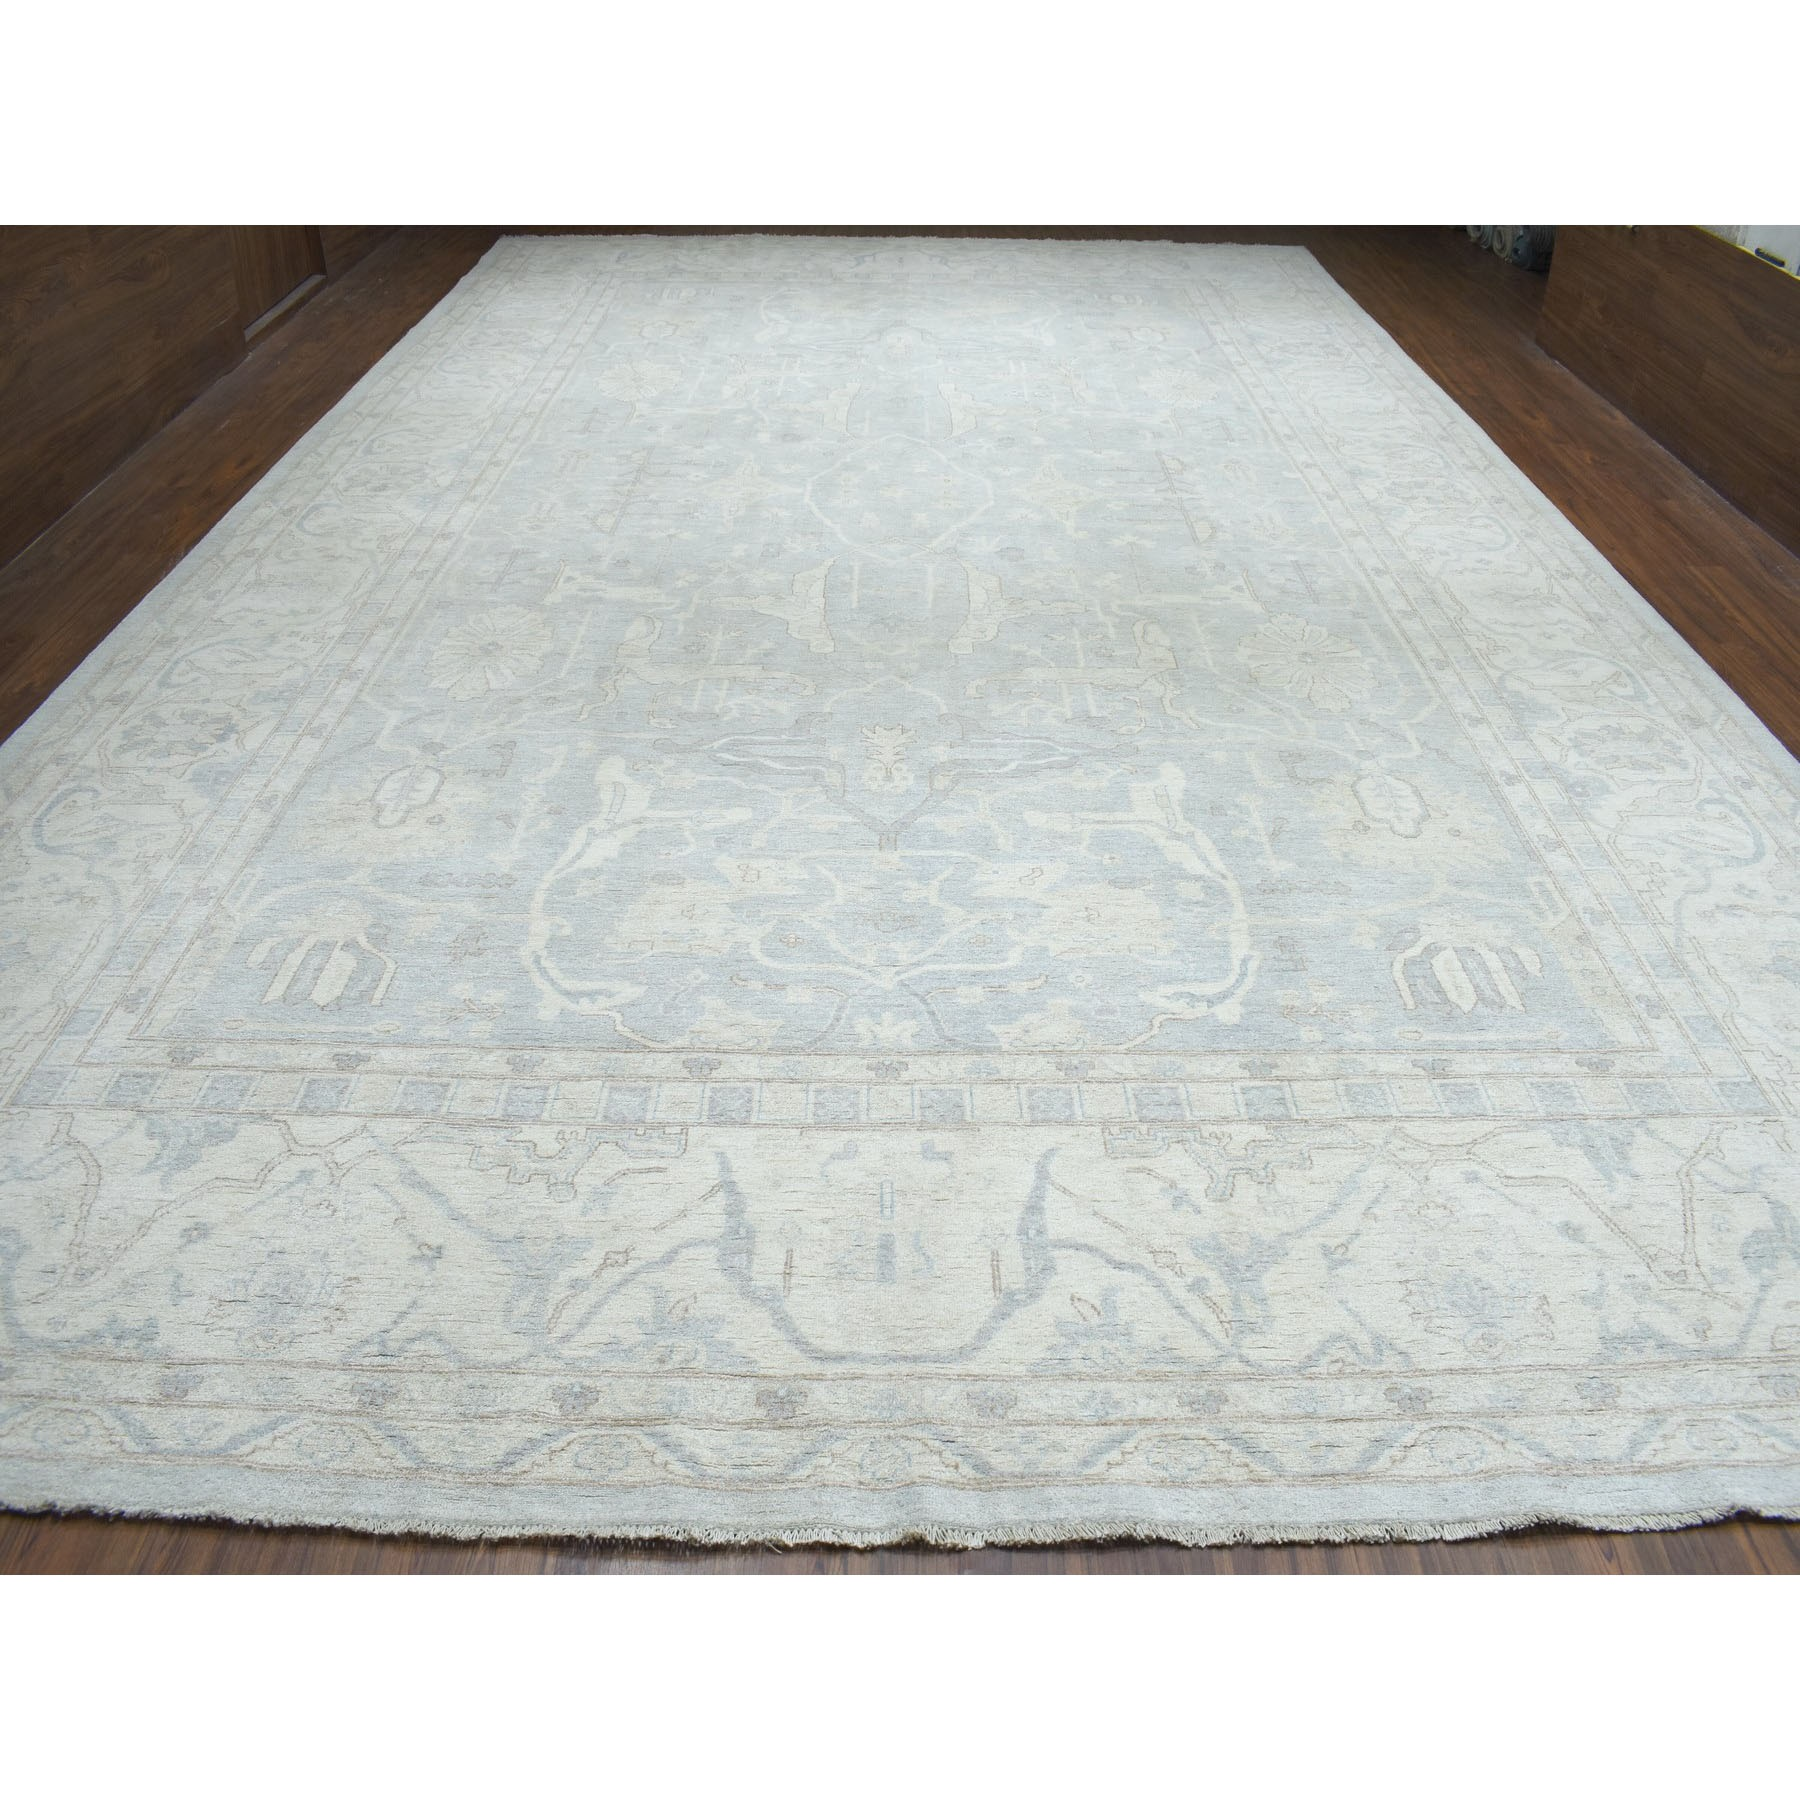 12-8 x19-9  Oversized White Wash Peshawar Pure Wool Hand-Knotted Oriental Rug